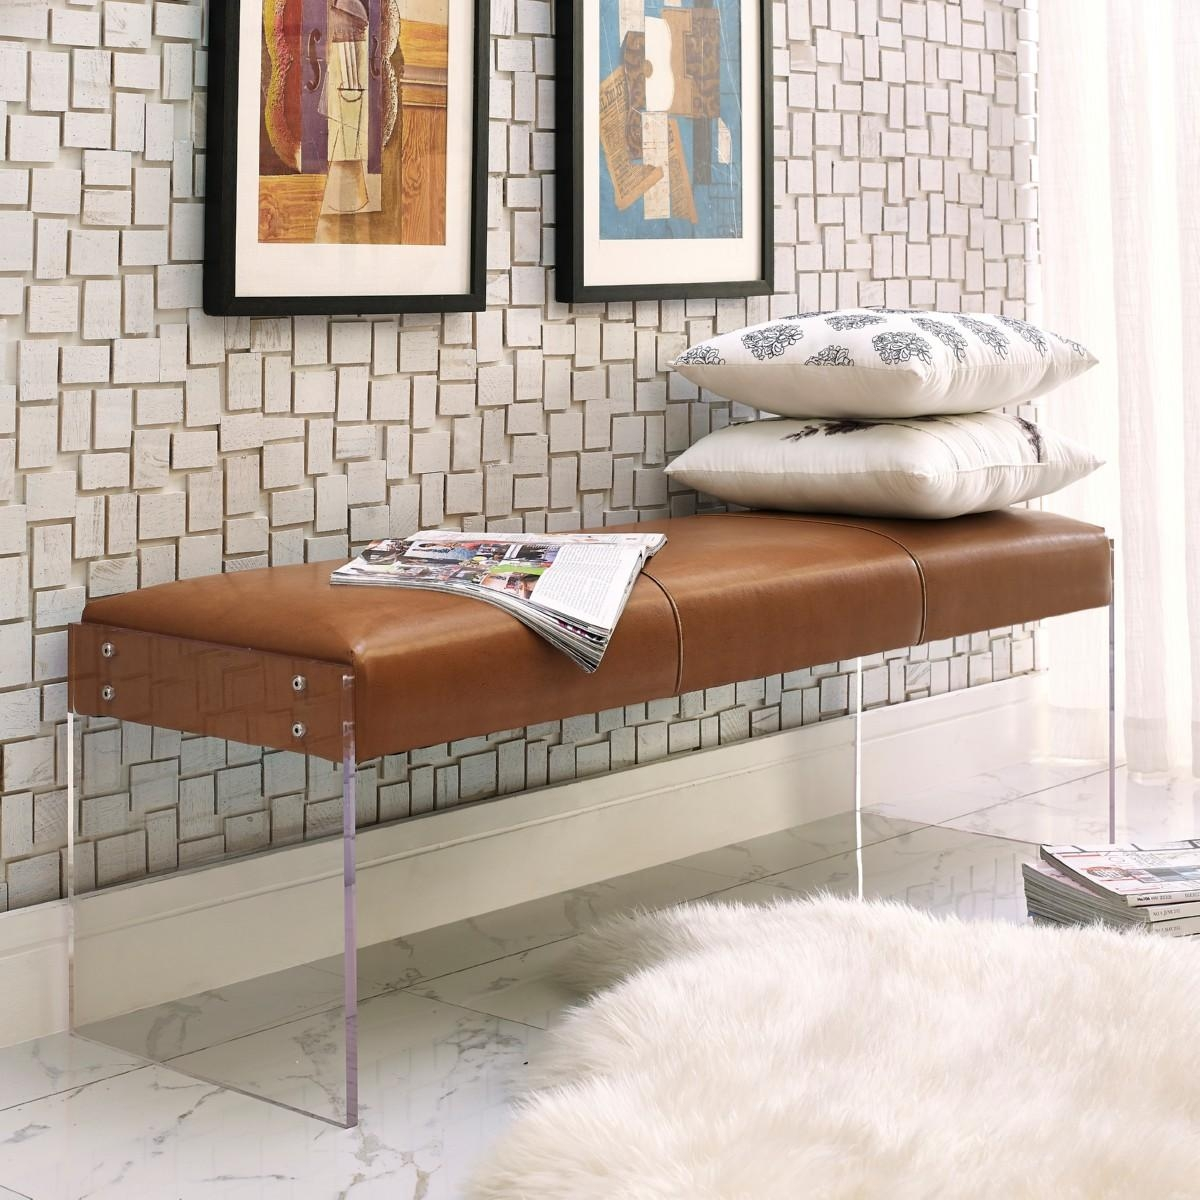 Envy Bench | Leather/acrylic, Tov Furniture – Modern Manhattan Inside Leather Bench Sofas (View 22 of 22)